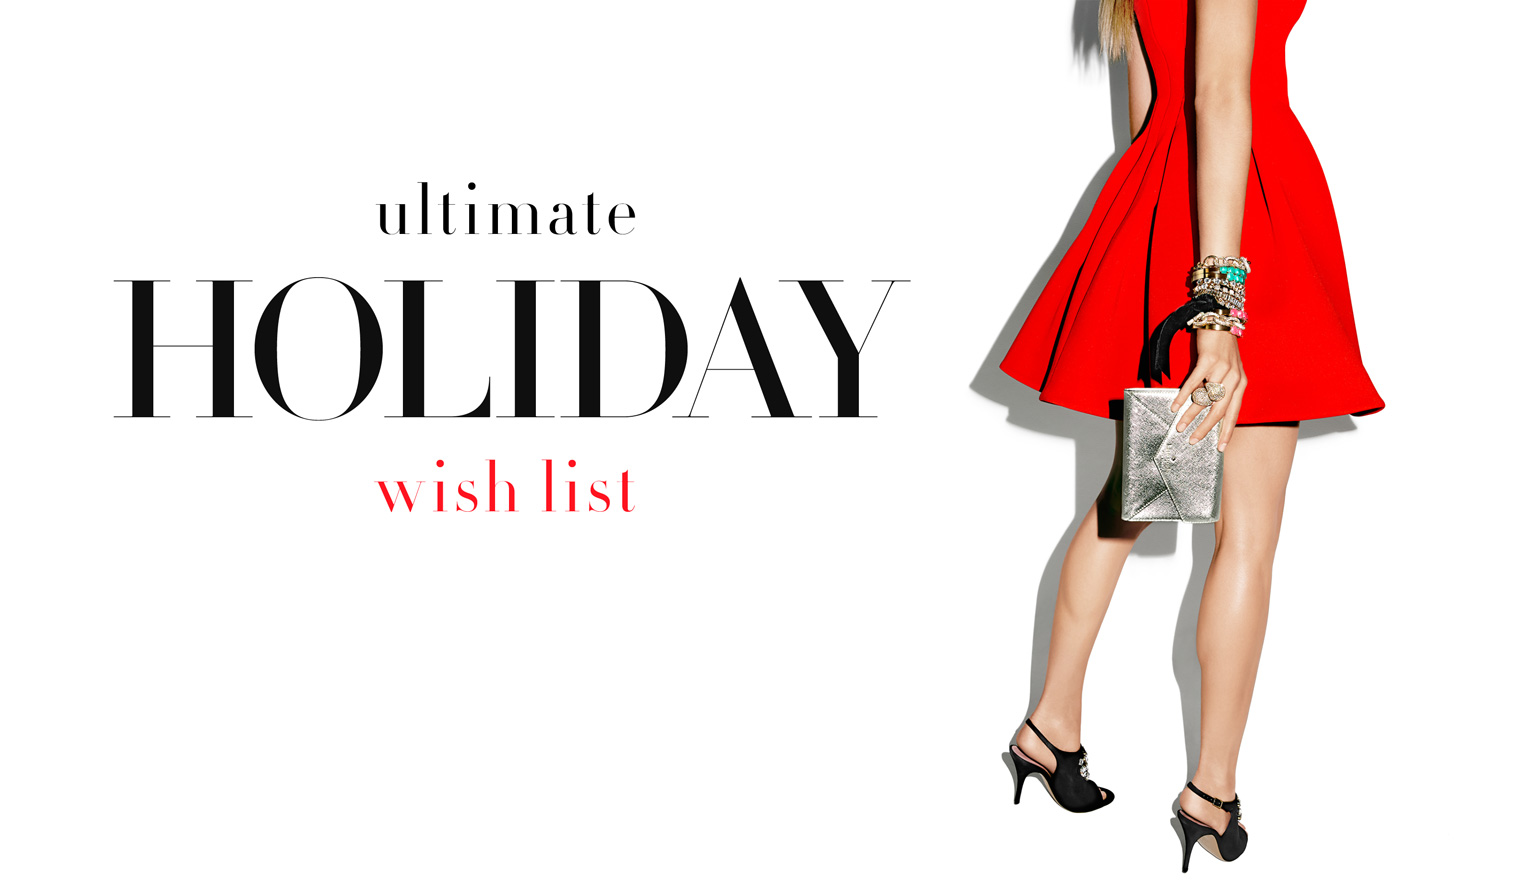 Extra 20% off incoming Black Friday Amazon promo code 'fashion' on CLOTHING/SHOES/JEWELRY & WATCHES